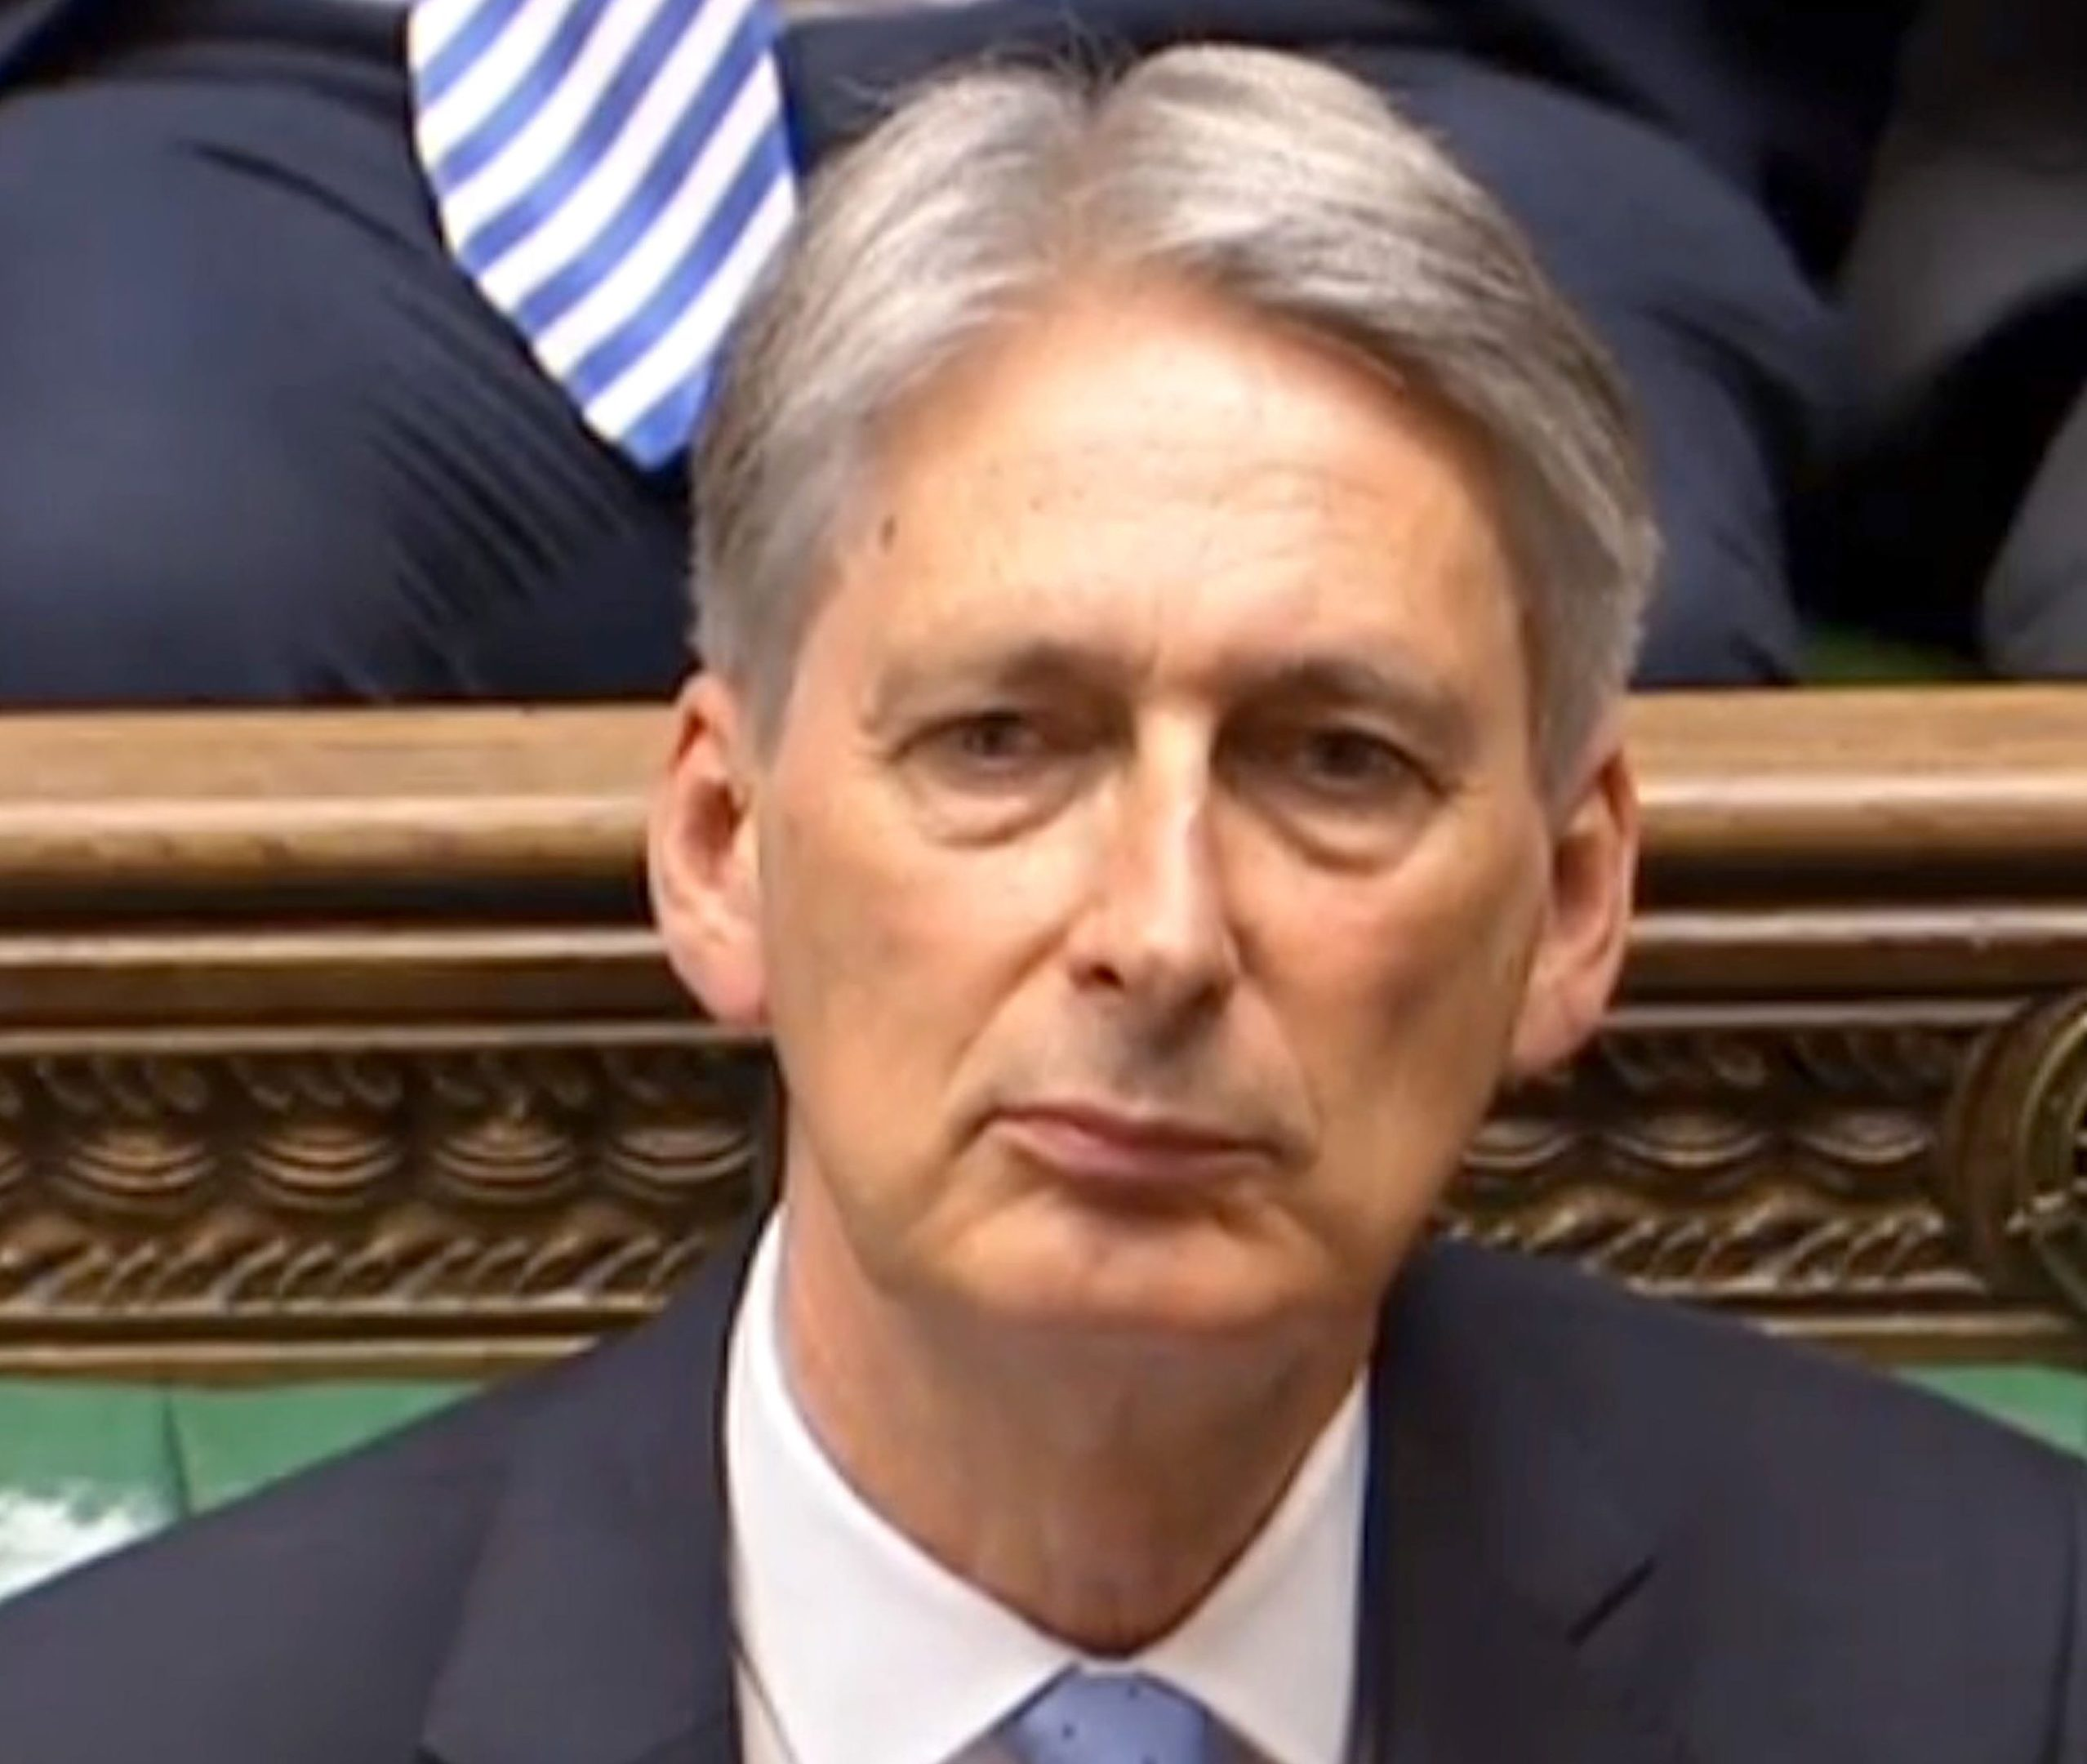 Chancellor Philip Hammond during Prime Minister's Questions (PA/PA Wire)